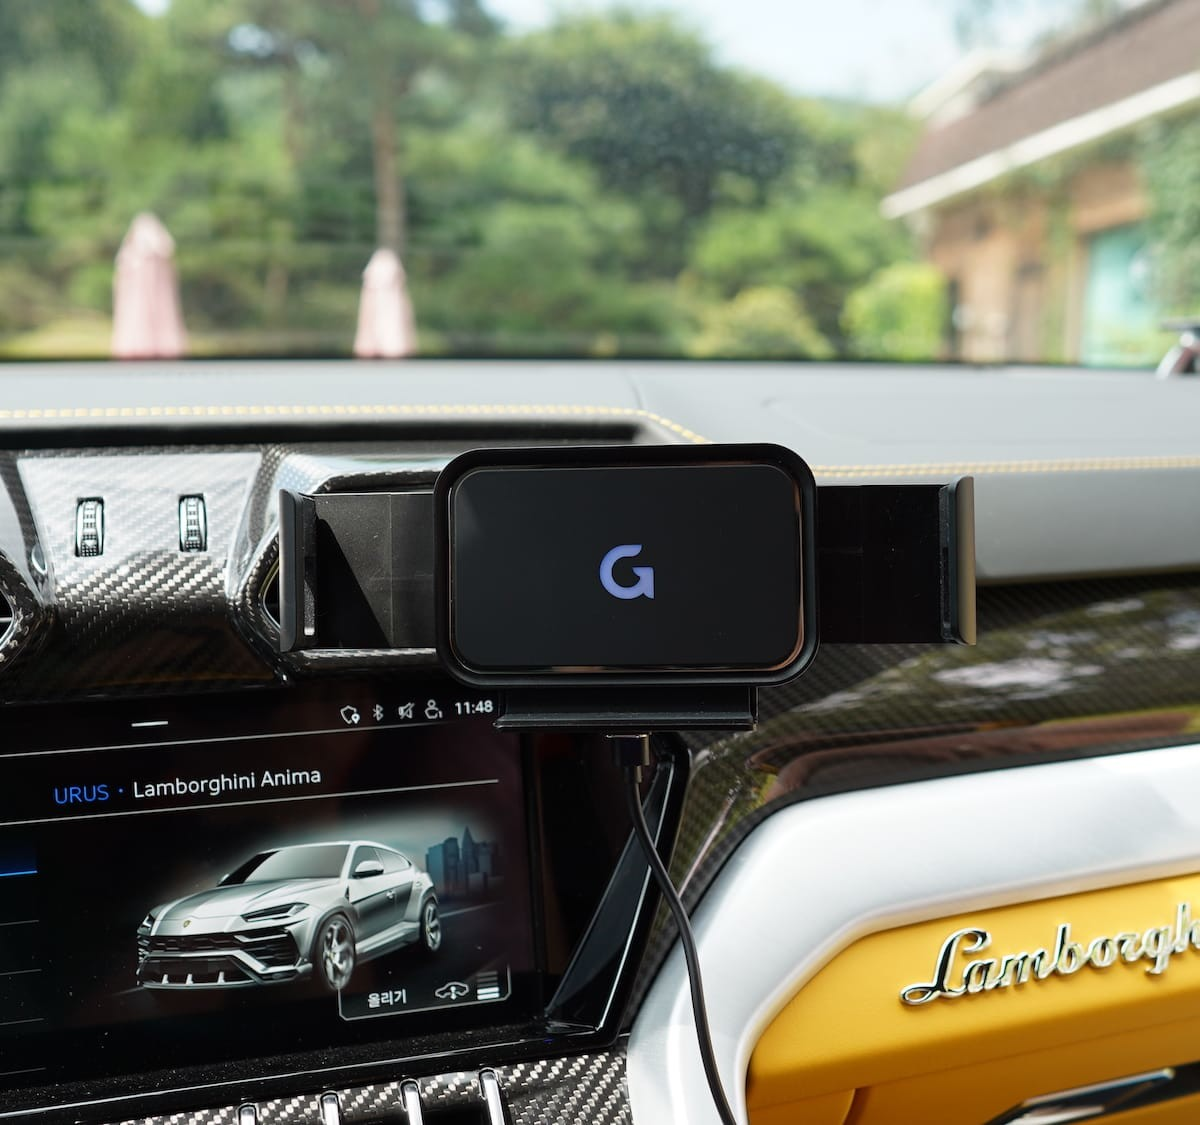 GAZE Wide H landscape car smartphone charger is compatible with Galaxy Z Fold2